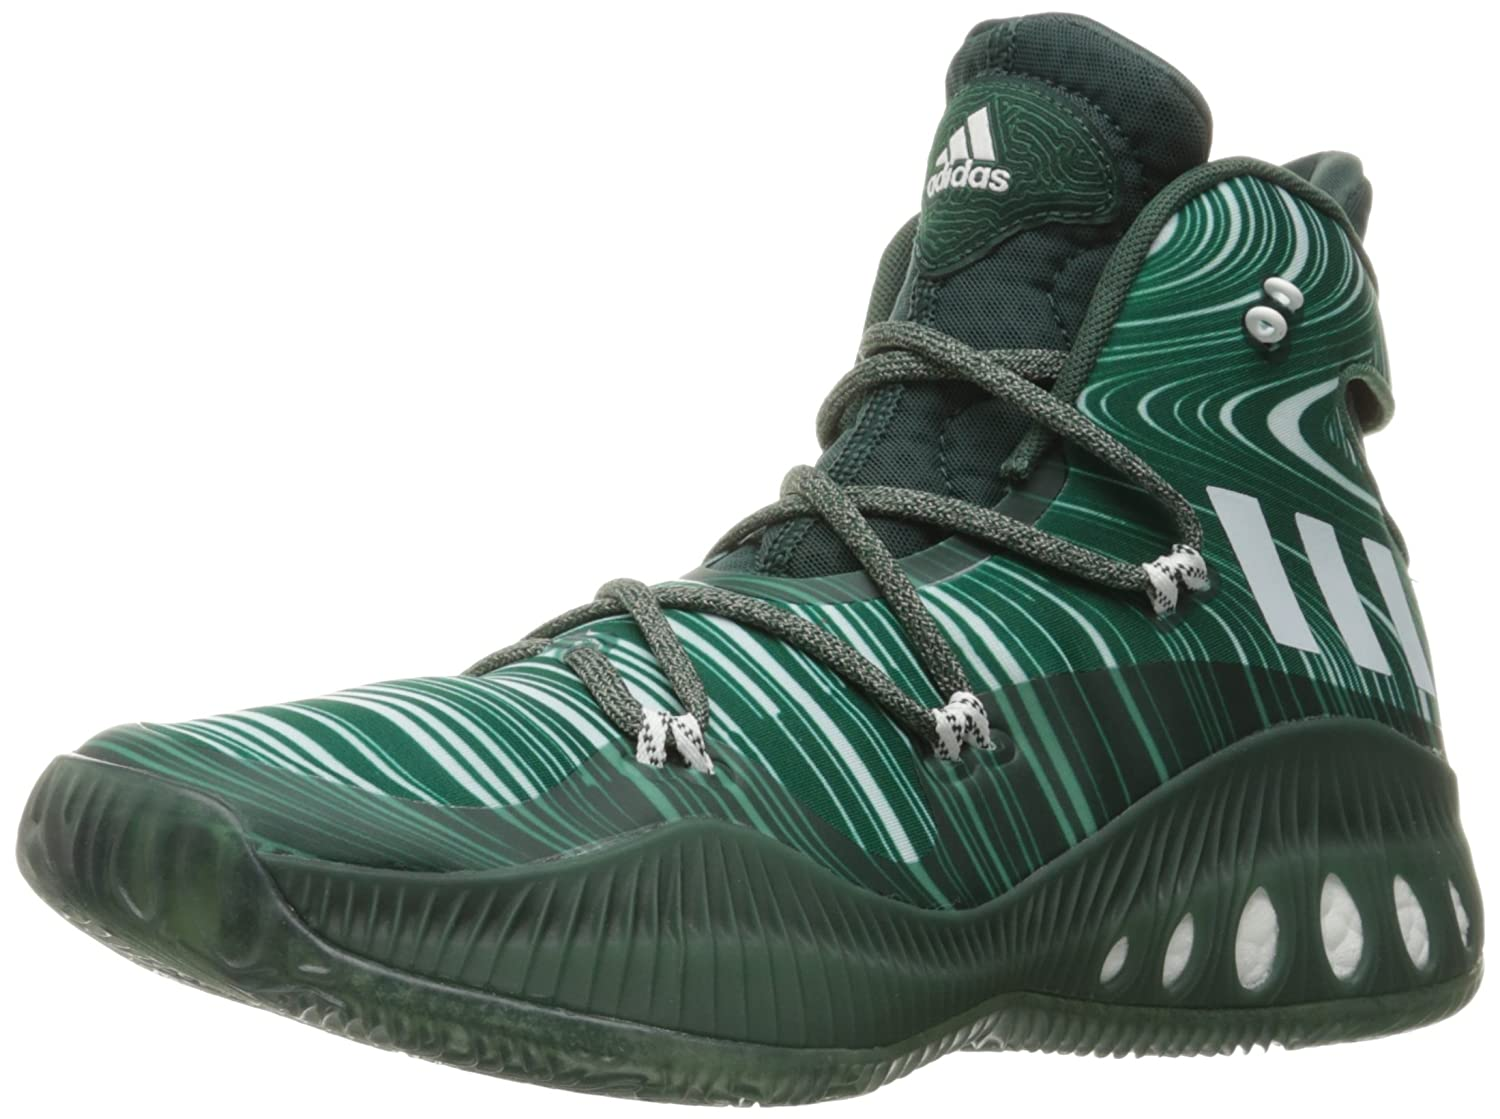 huge selection of d51a7 0b011 Adidas Men s Crazy Explosive Basketball Shoe  Amazon.co.uk  Shoes   Bags